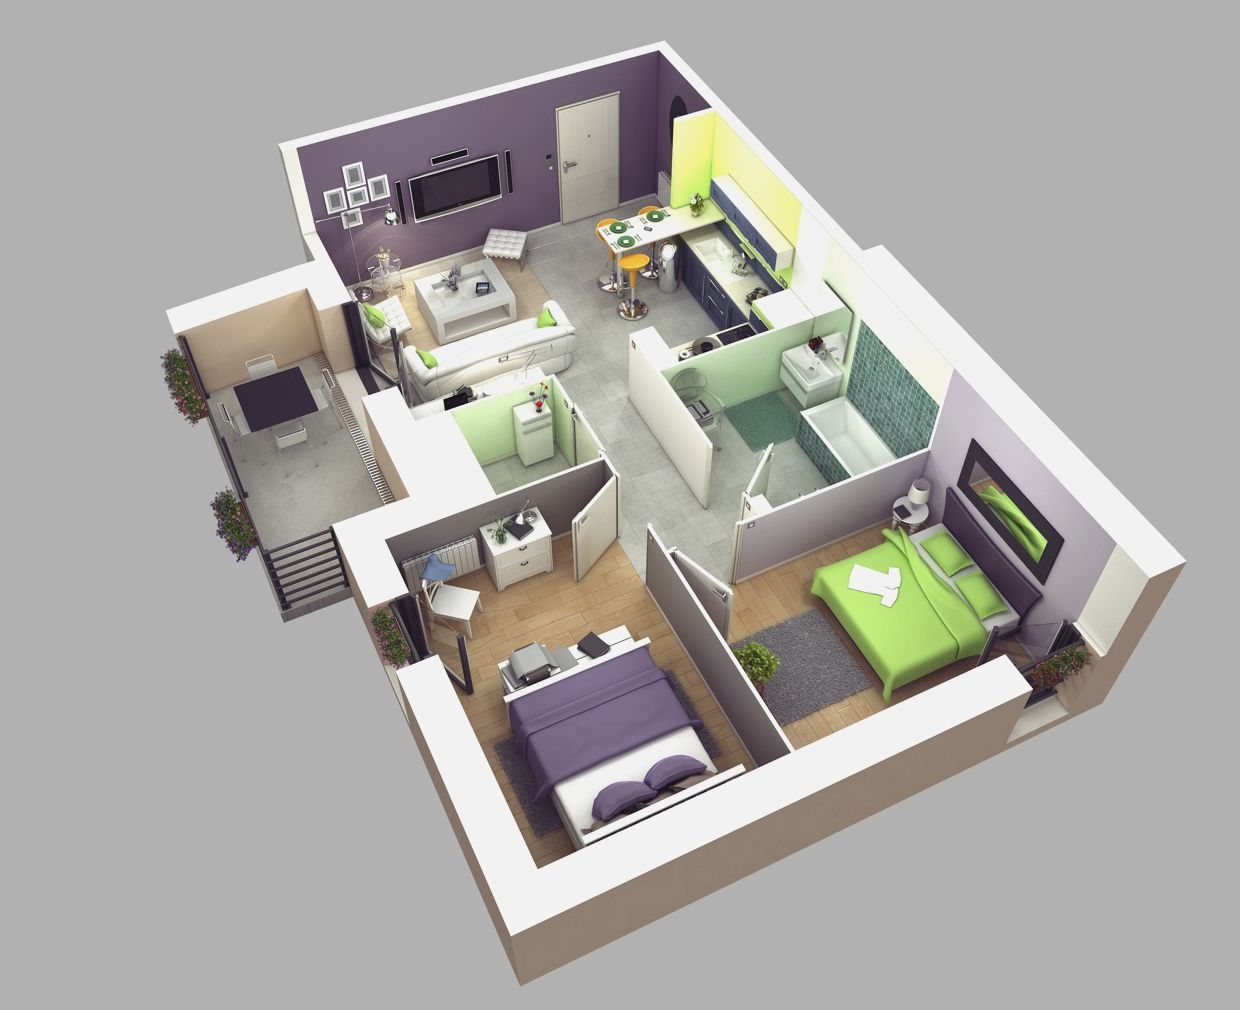 1 bedroom house plans 3d just the two of us apartment for Home design ideas 3d